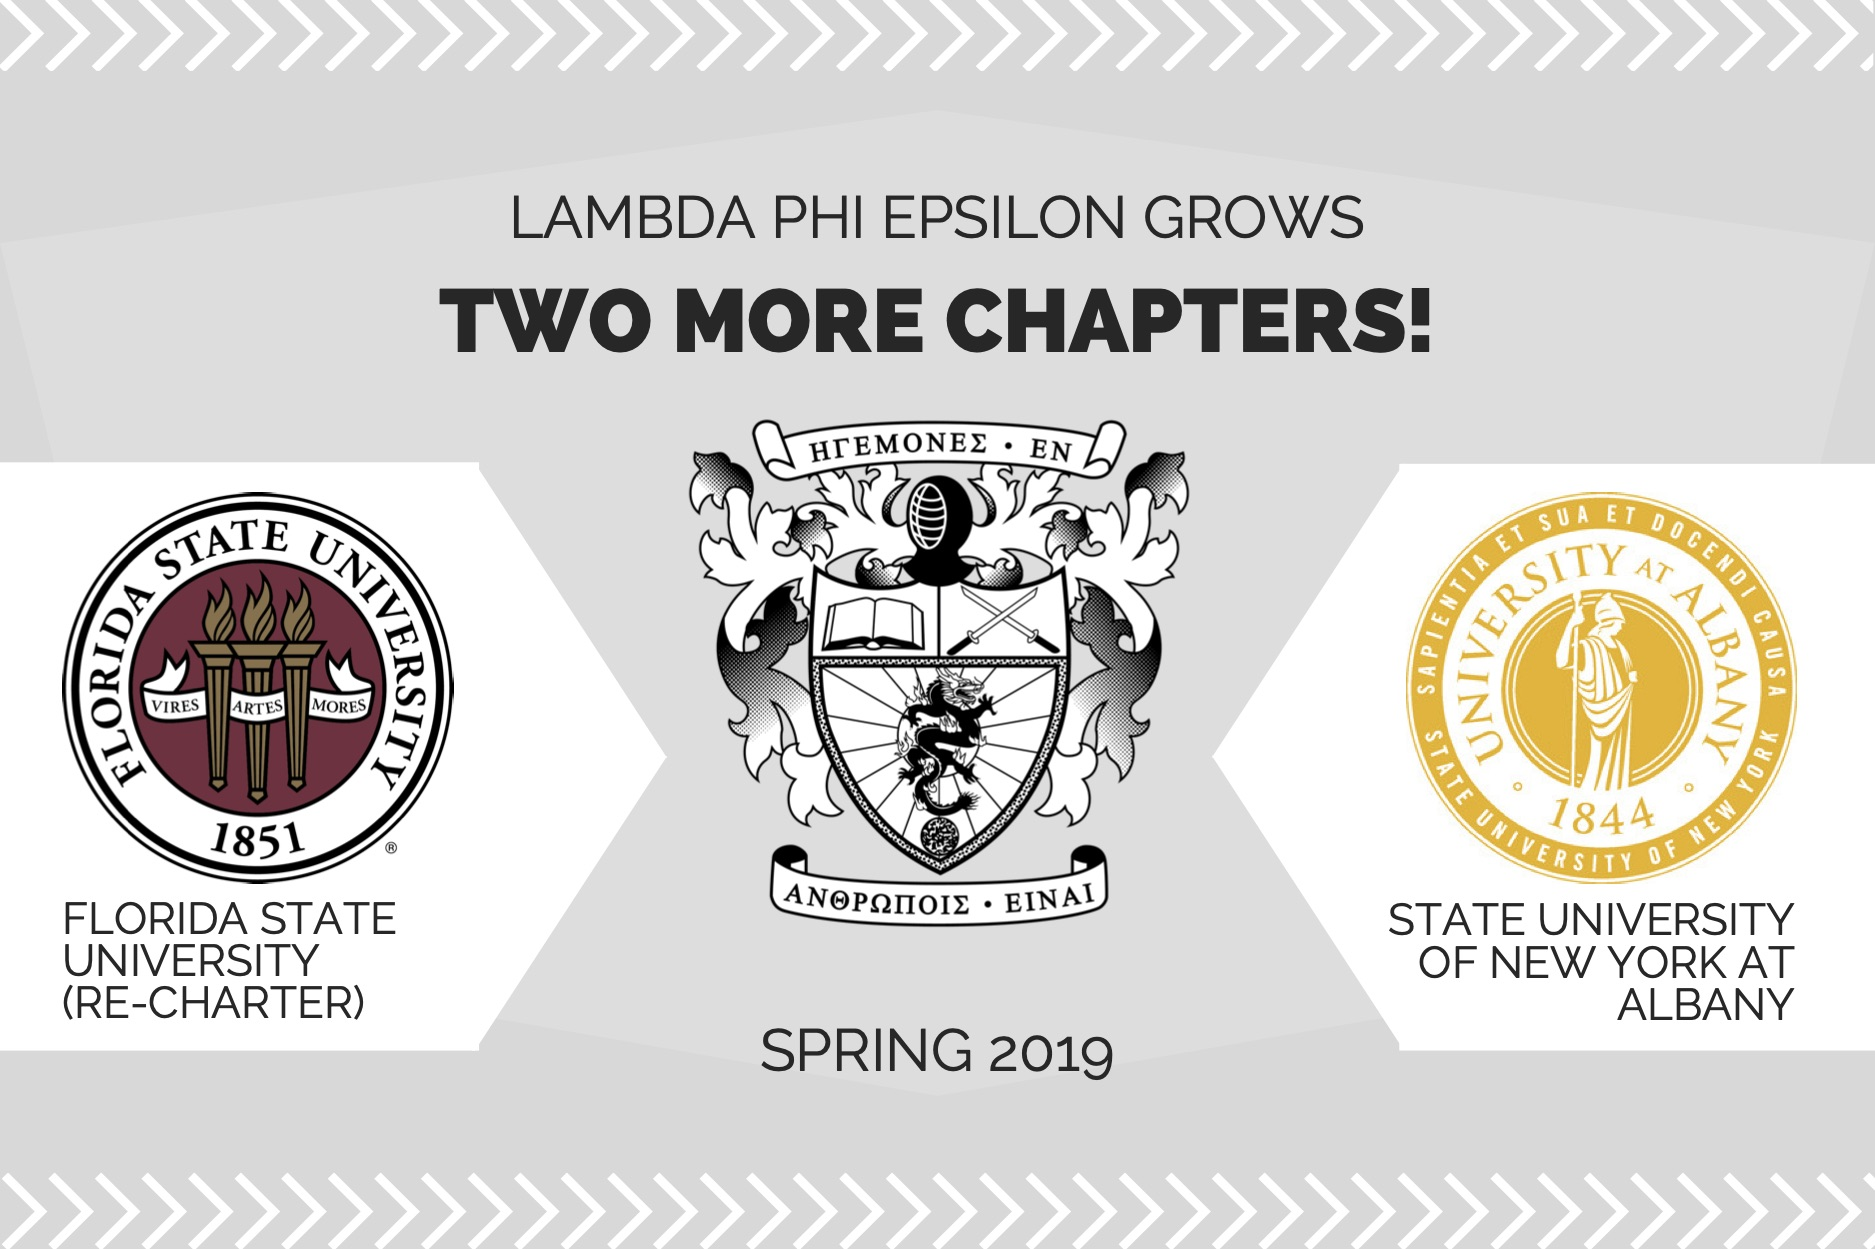 Lambda Phi Epsilon grows two more chapters in Spring 2019